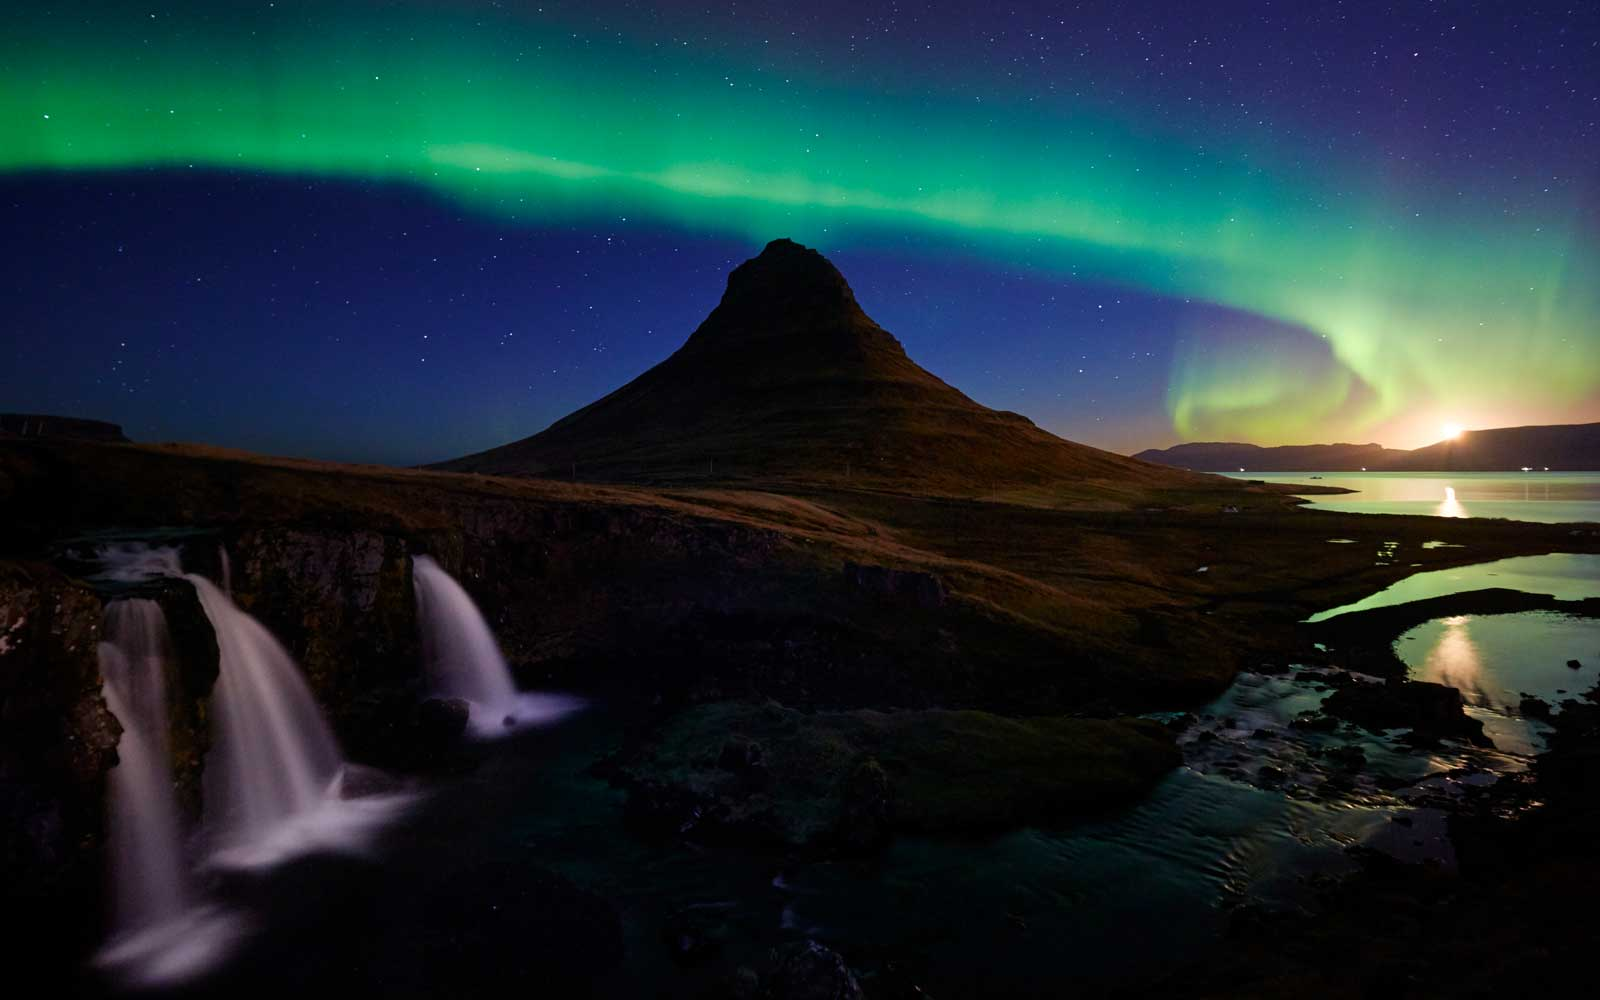 Cheap Flights to Iceland to See the Northern Lights Starting at $99